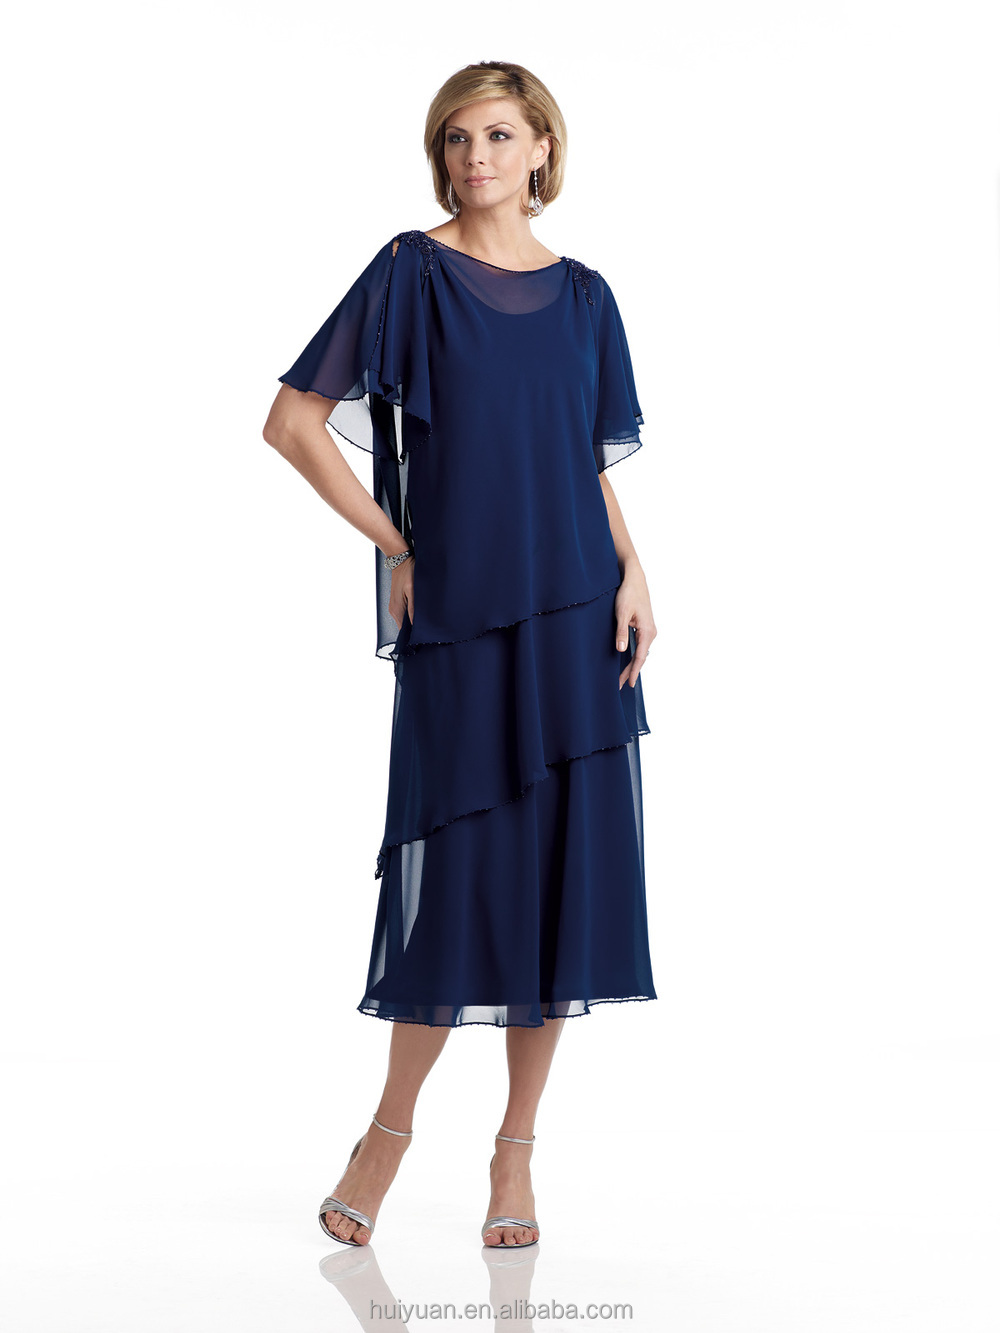 royal blue short sleeve knee length mother chiffon dress